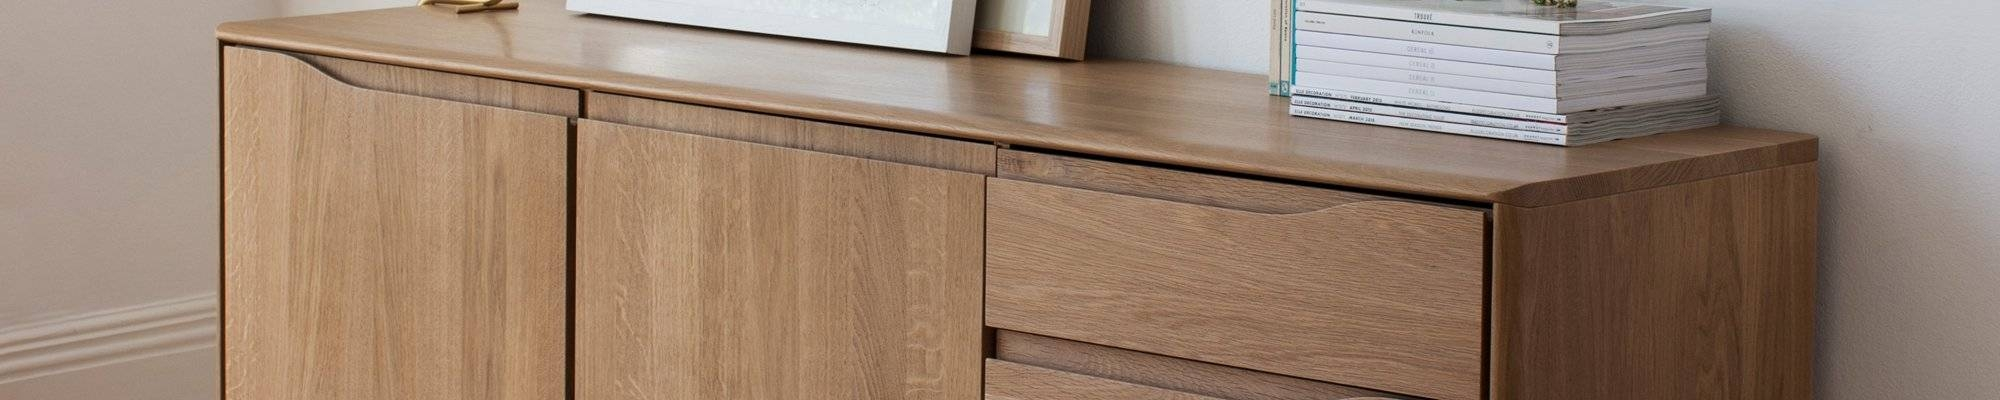 Light Wood Sideboards | Designer Contemporary Sideboards | Heal's regarding Light Wood Sideboards (Image 11 of 30)